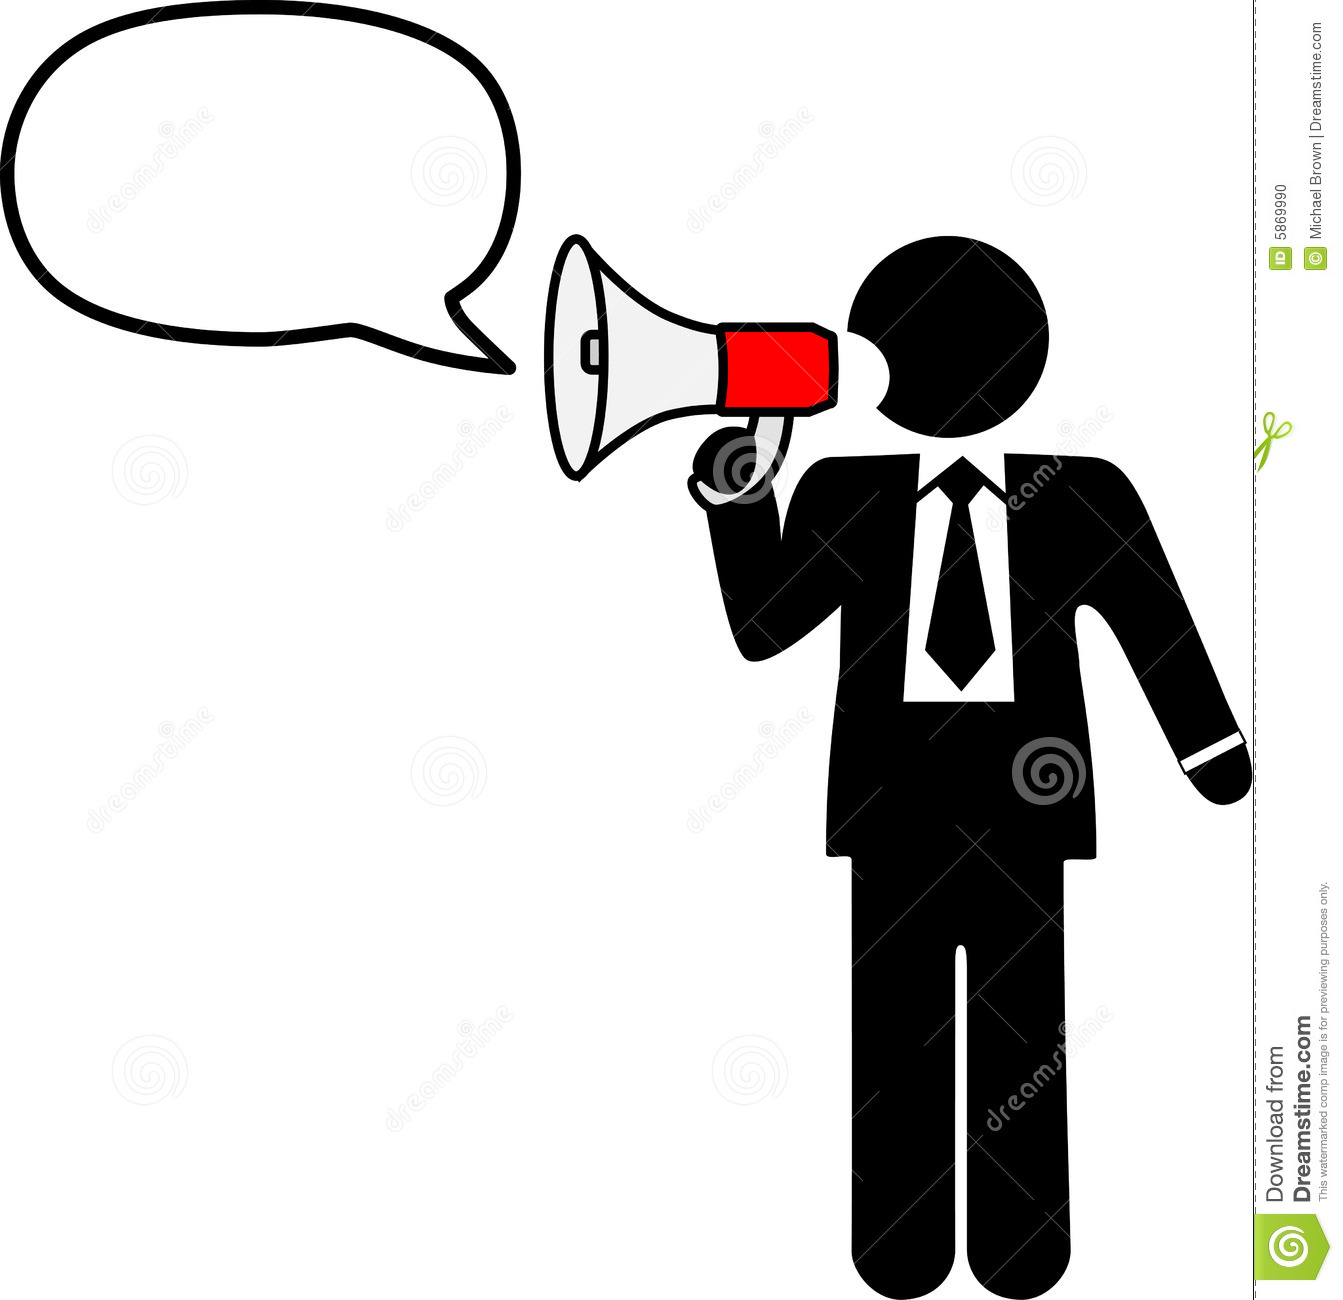 To Broadcast Talk An Ad Announcement Communication In A Bullhorn